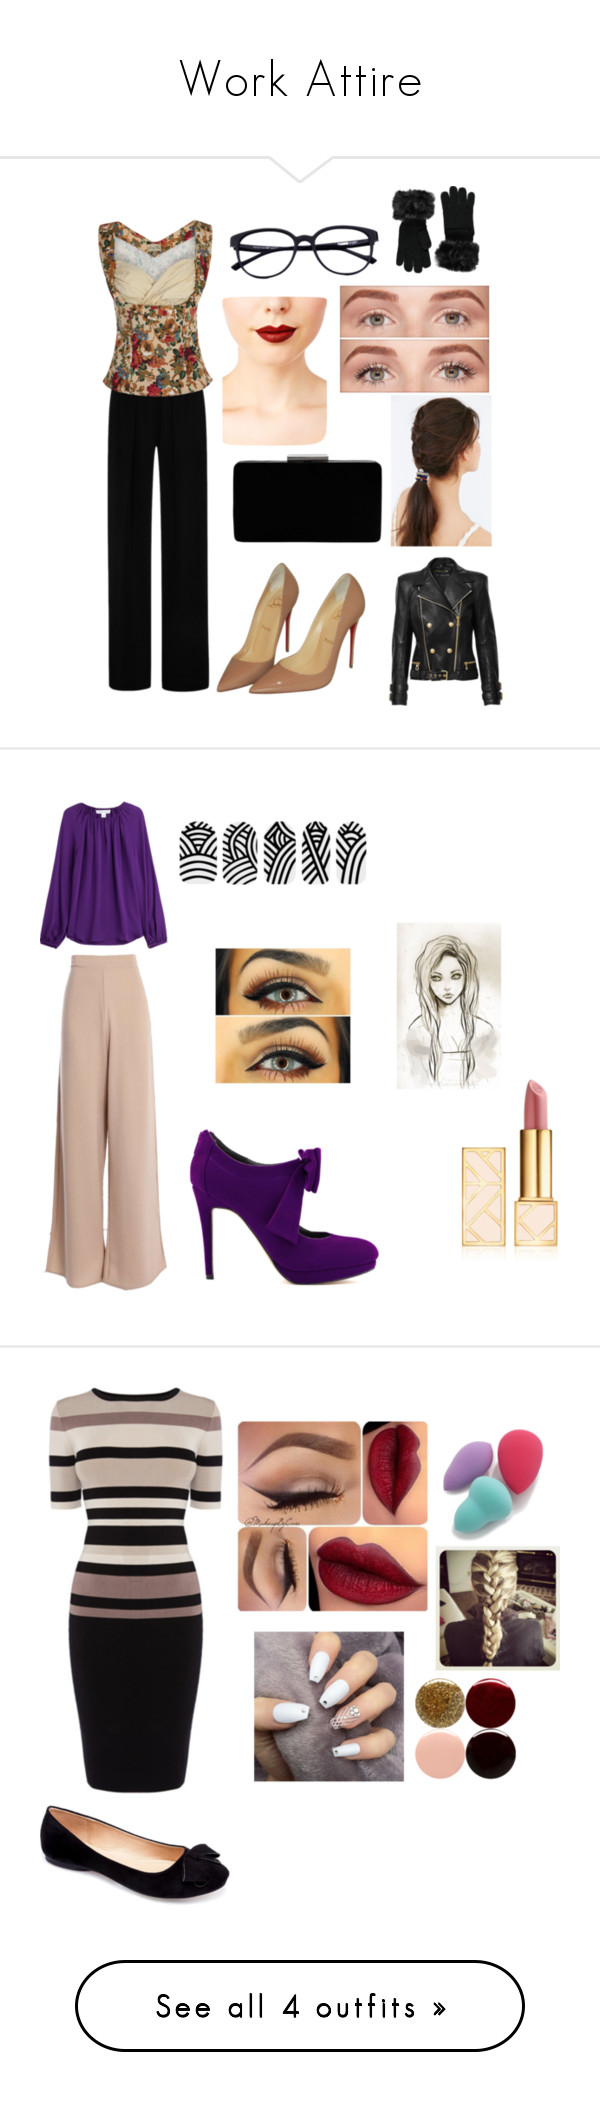 """""""Work Attire"""" by photogrpahyphreak on Polyvore featuring Clover Canyon, Christian Louboutin, John Lewis, Jeffree Star, Benefit, JEM, Forever 21, Diane Von Furstenberg, Tory Burch and Machi"""